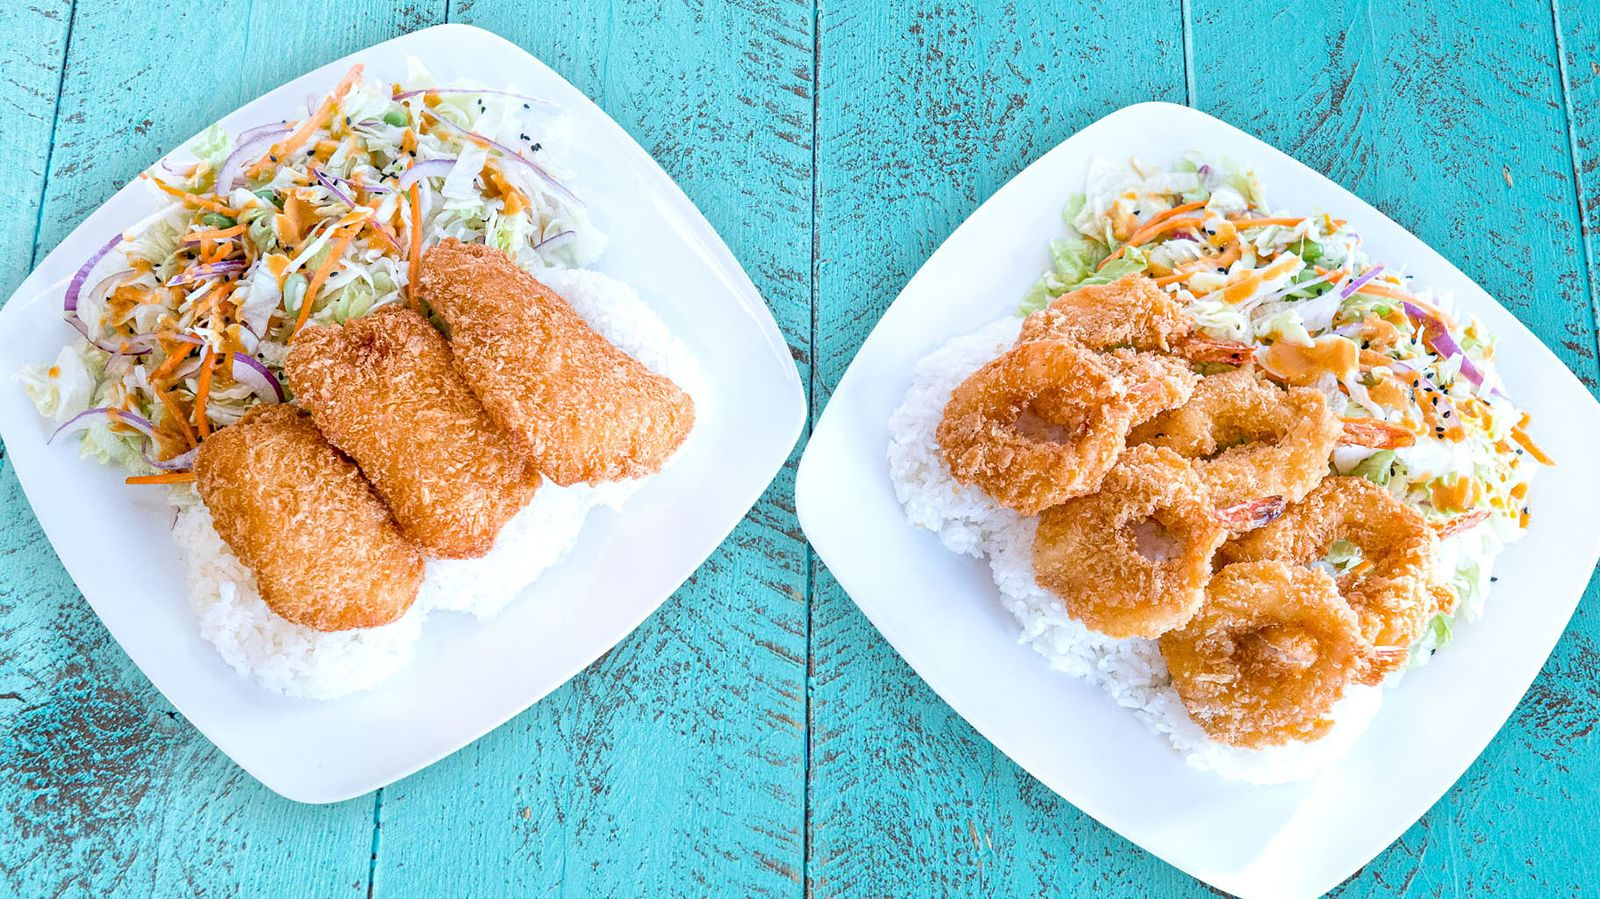 Ono Hawaiian BBQ Brings Back the Popular $5 Aloha Plate With a New Addition This Year